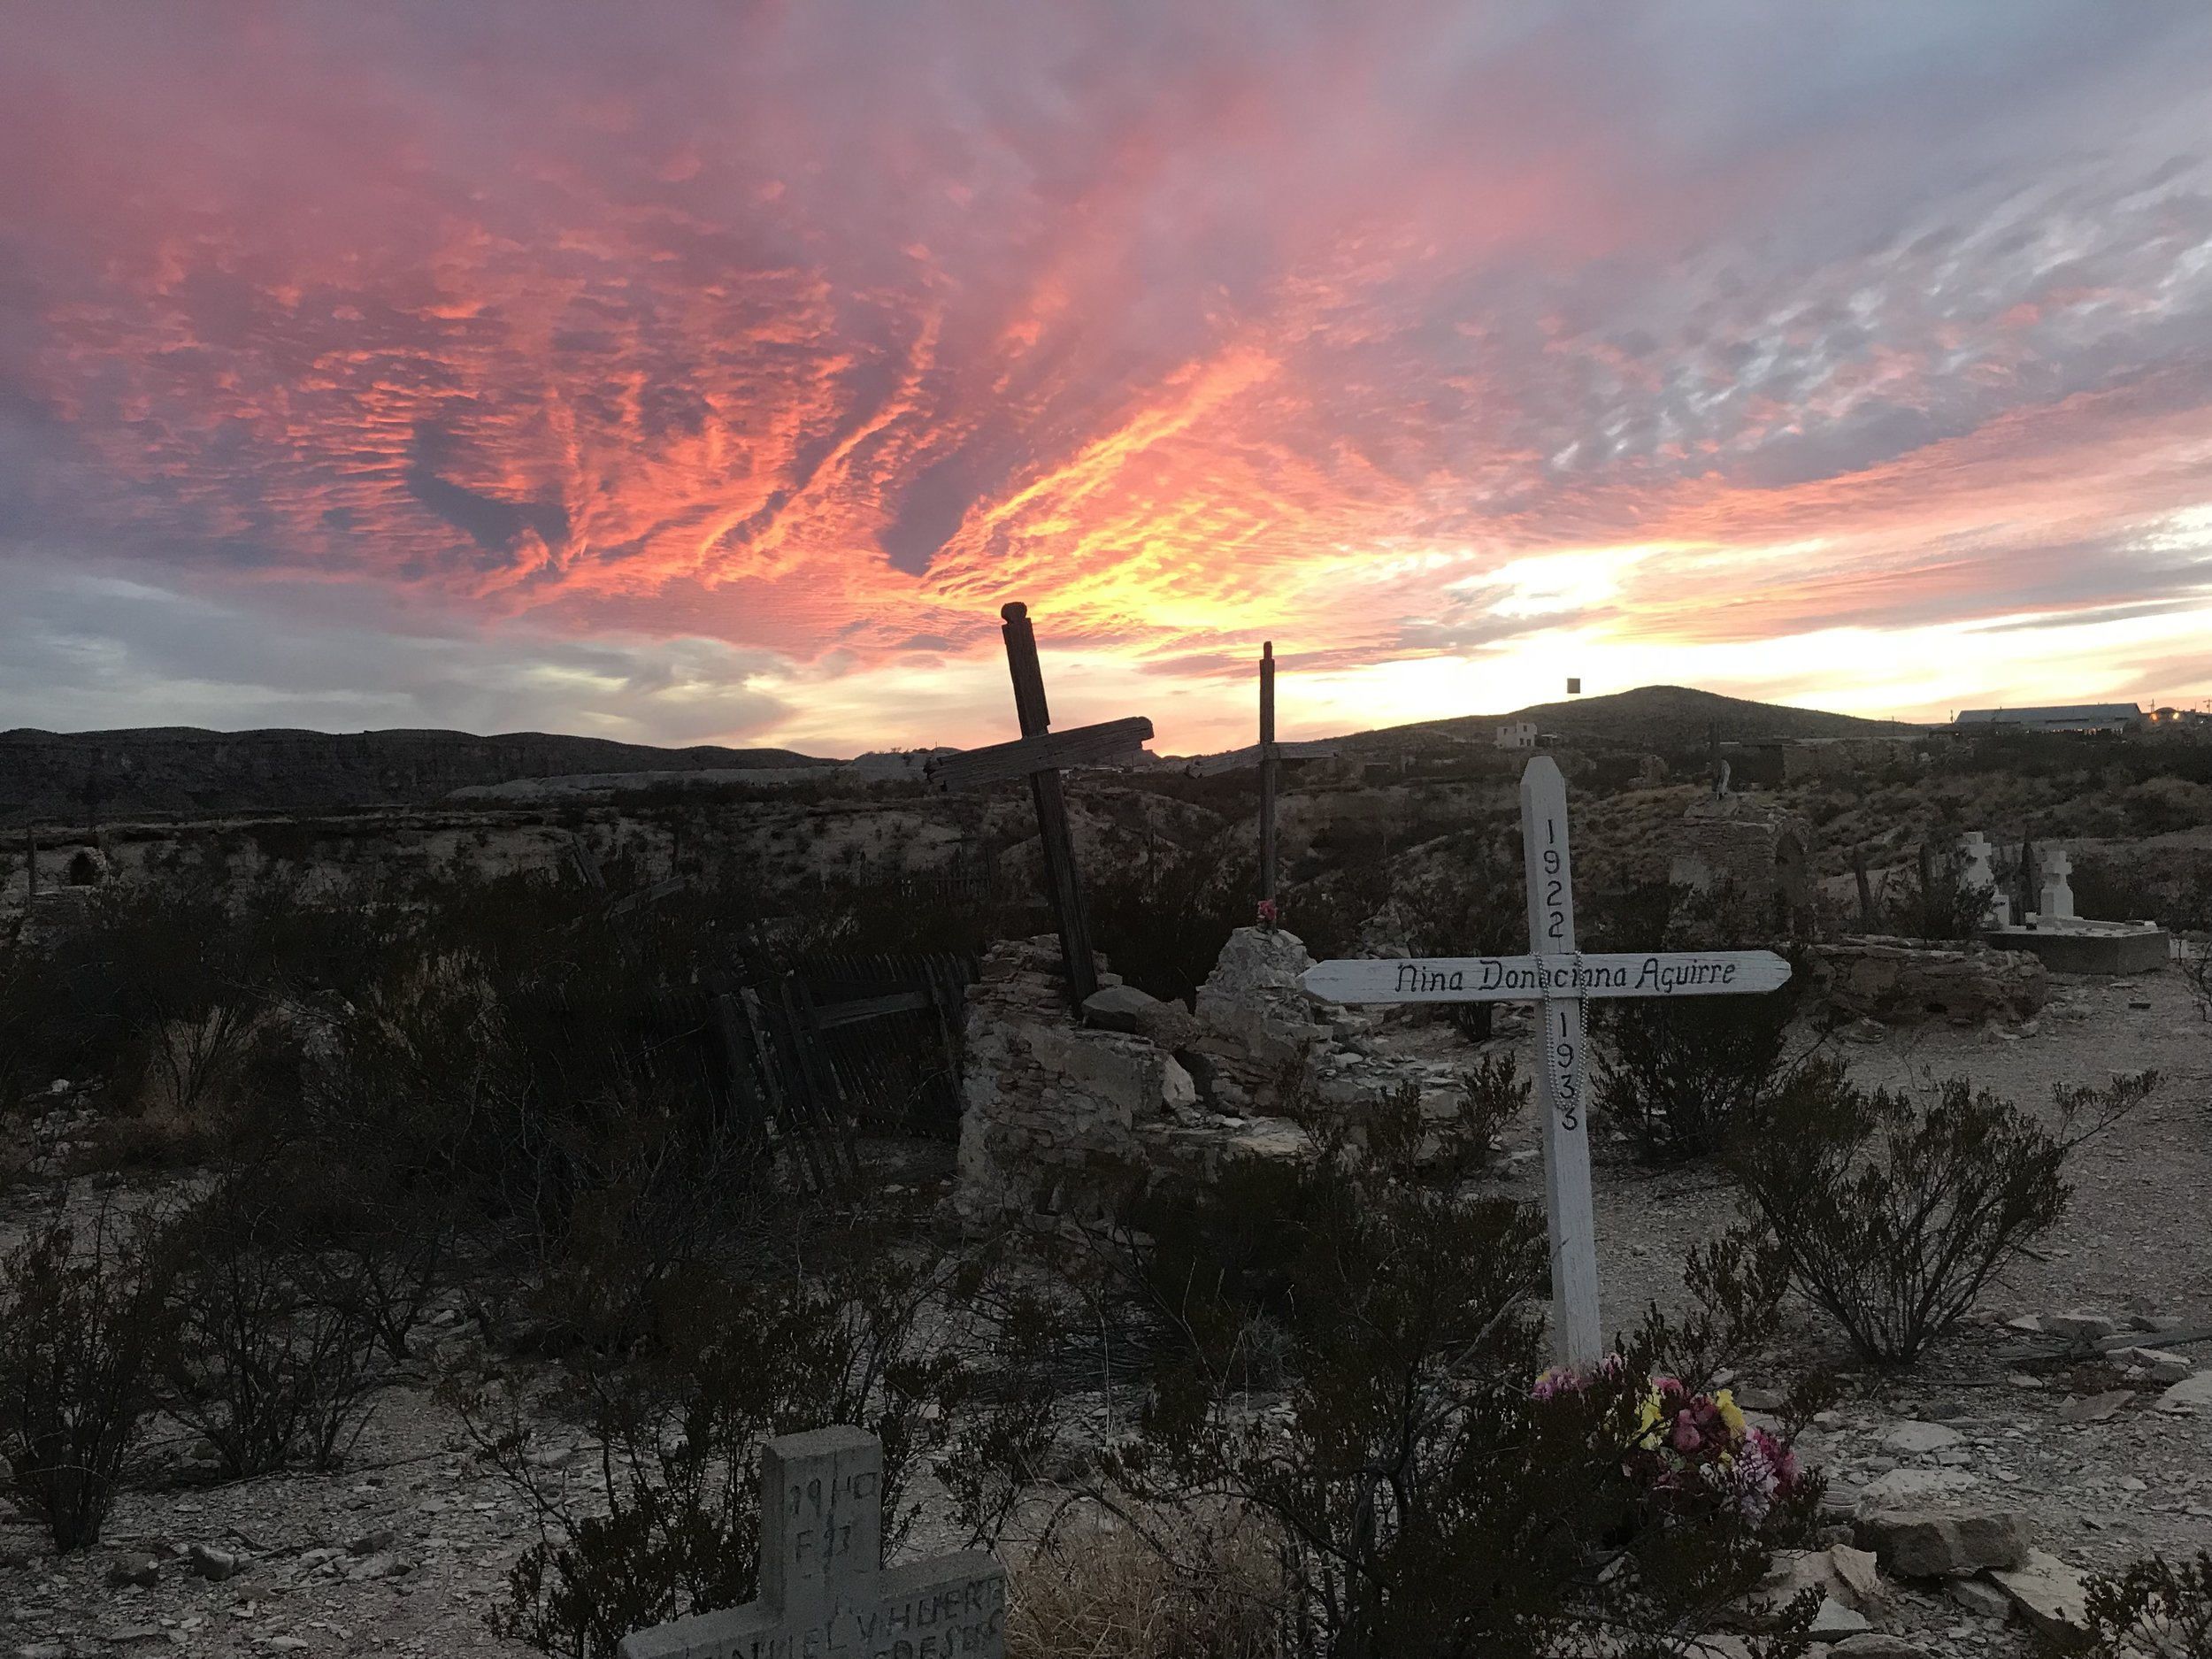 The cemetery in Terlingua, Texas, which calls itself a ghost town, is still active.